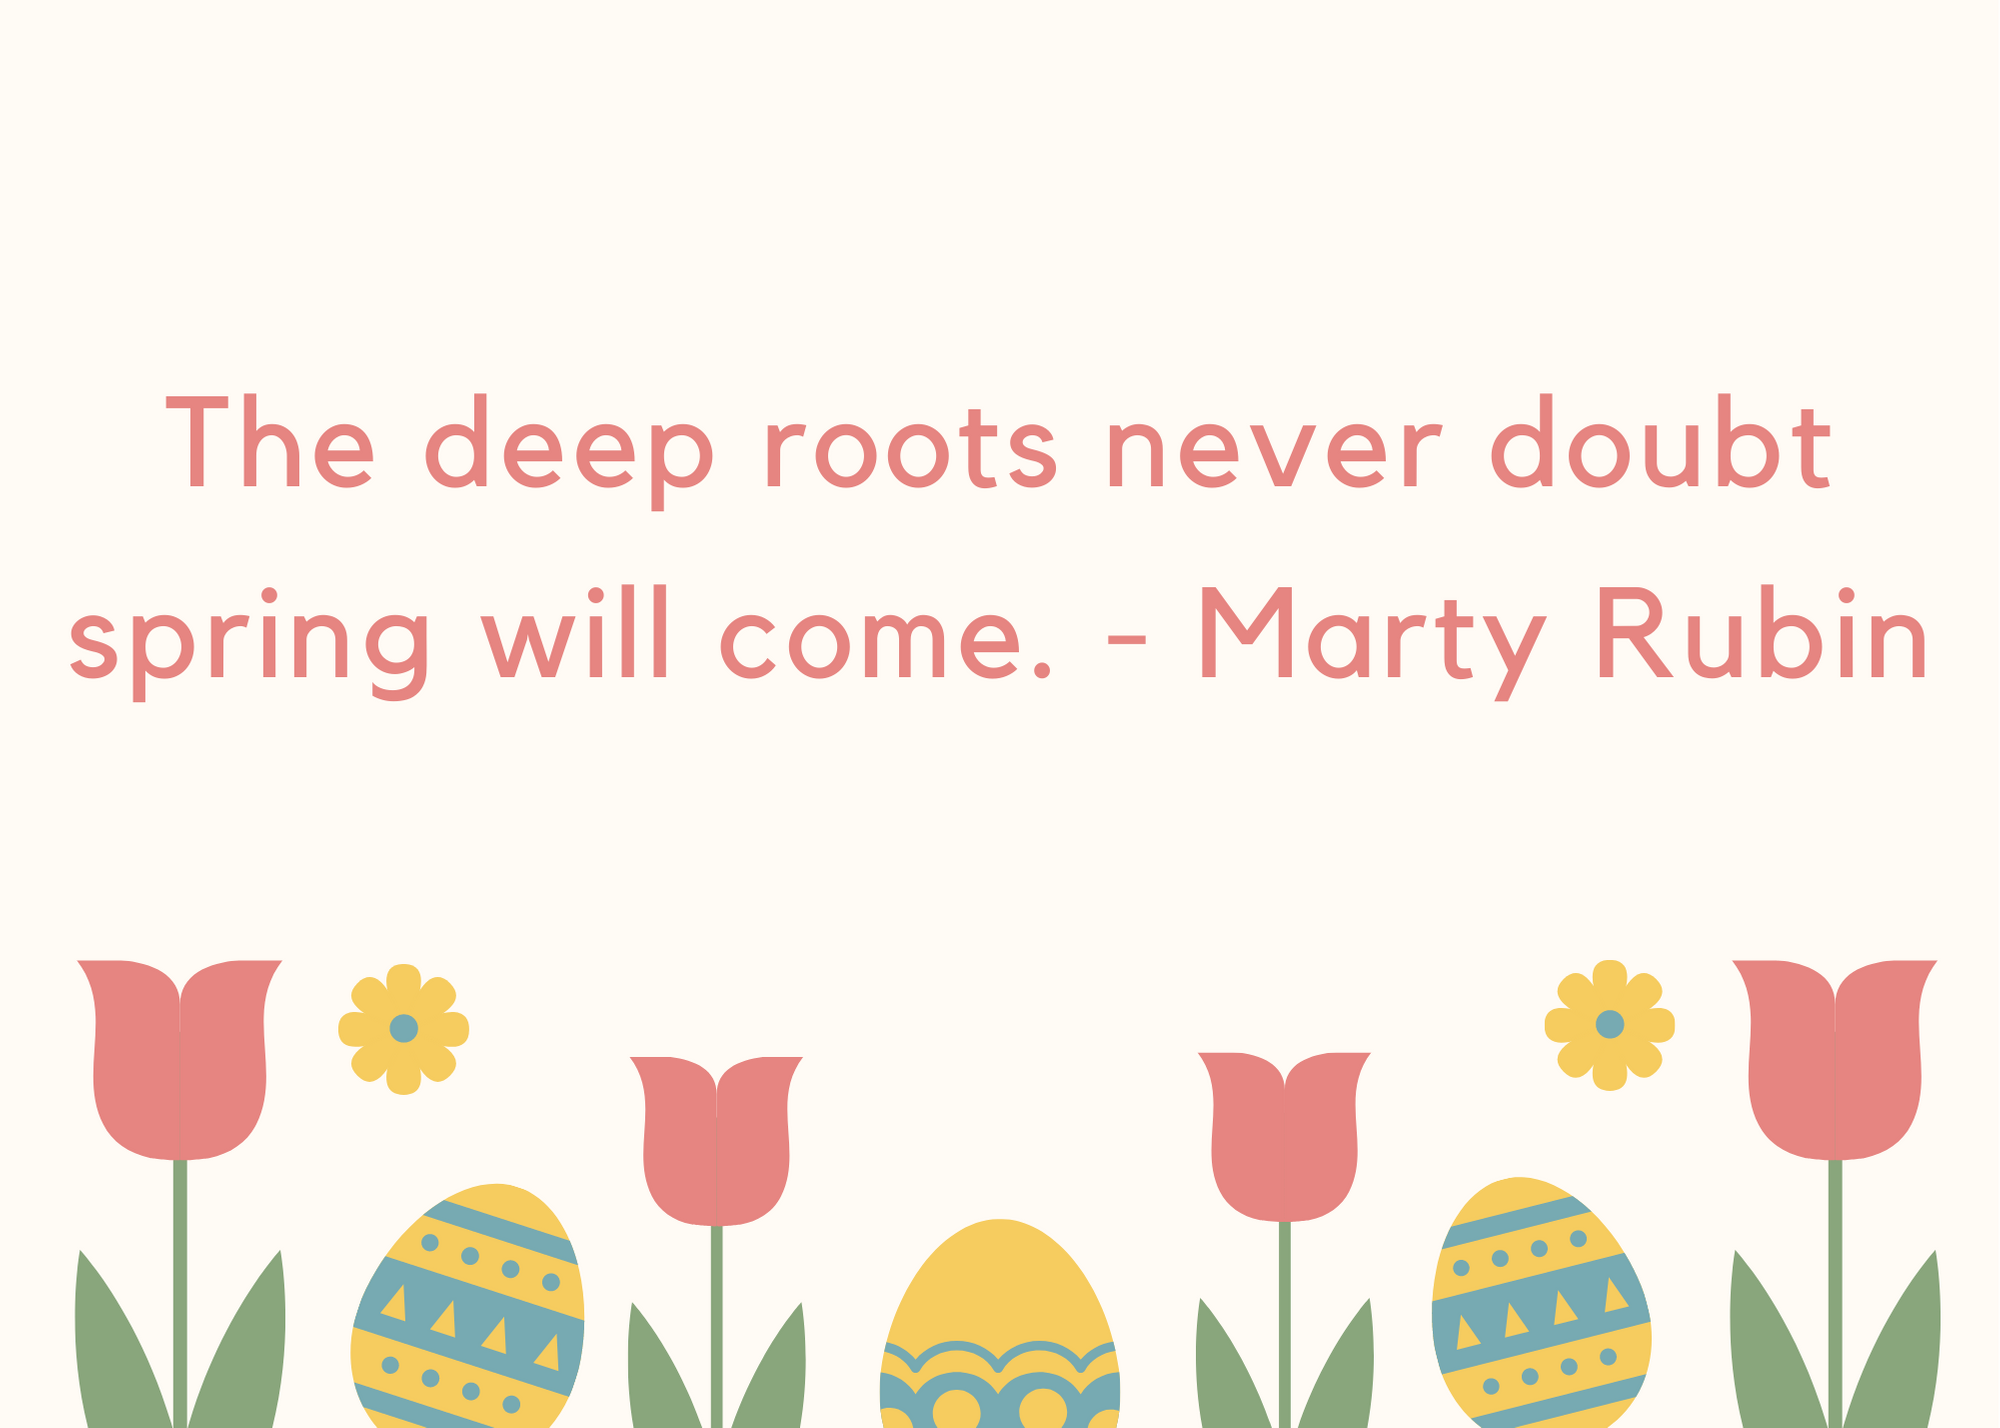 The deep roots never doubt spring will come. - Marty Rubin